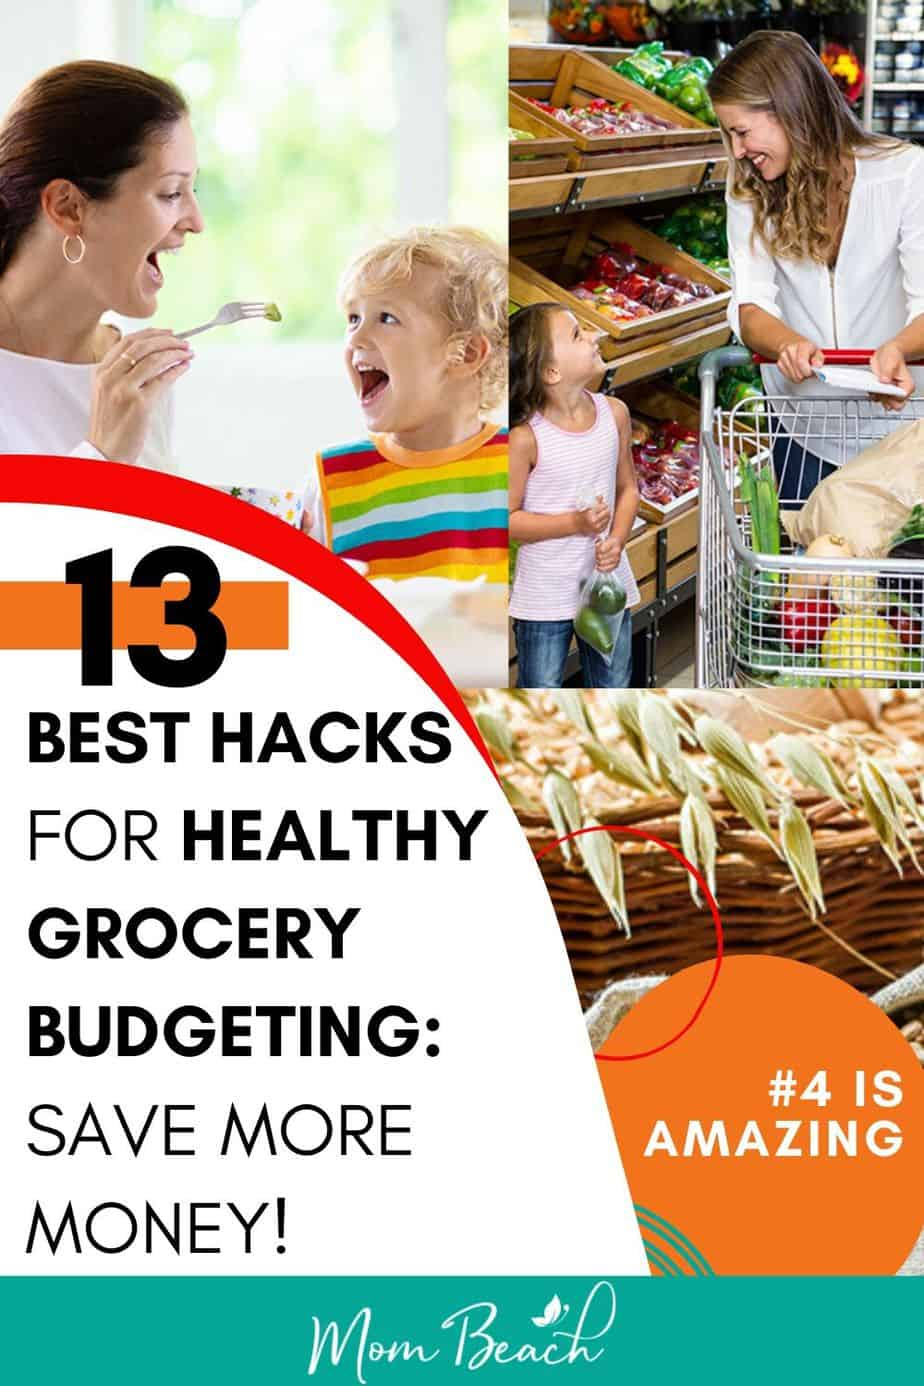 You won't believe how easy it is to eat healthy on a budget with these healthy grocery budgeting hacks. You can prepare easy dinners recipes for the family for cheap. There are several ways to save money on groceries such as use money saving apps, make a shopping list and more. Save money on your groceries with these money saving tips. #healthygrocerybudgeting #grocerybudget #healthygrocerybudget #budgeting #moneysavingtips #savemoney